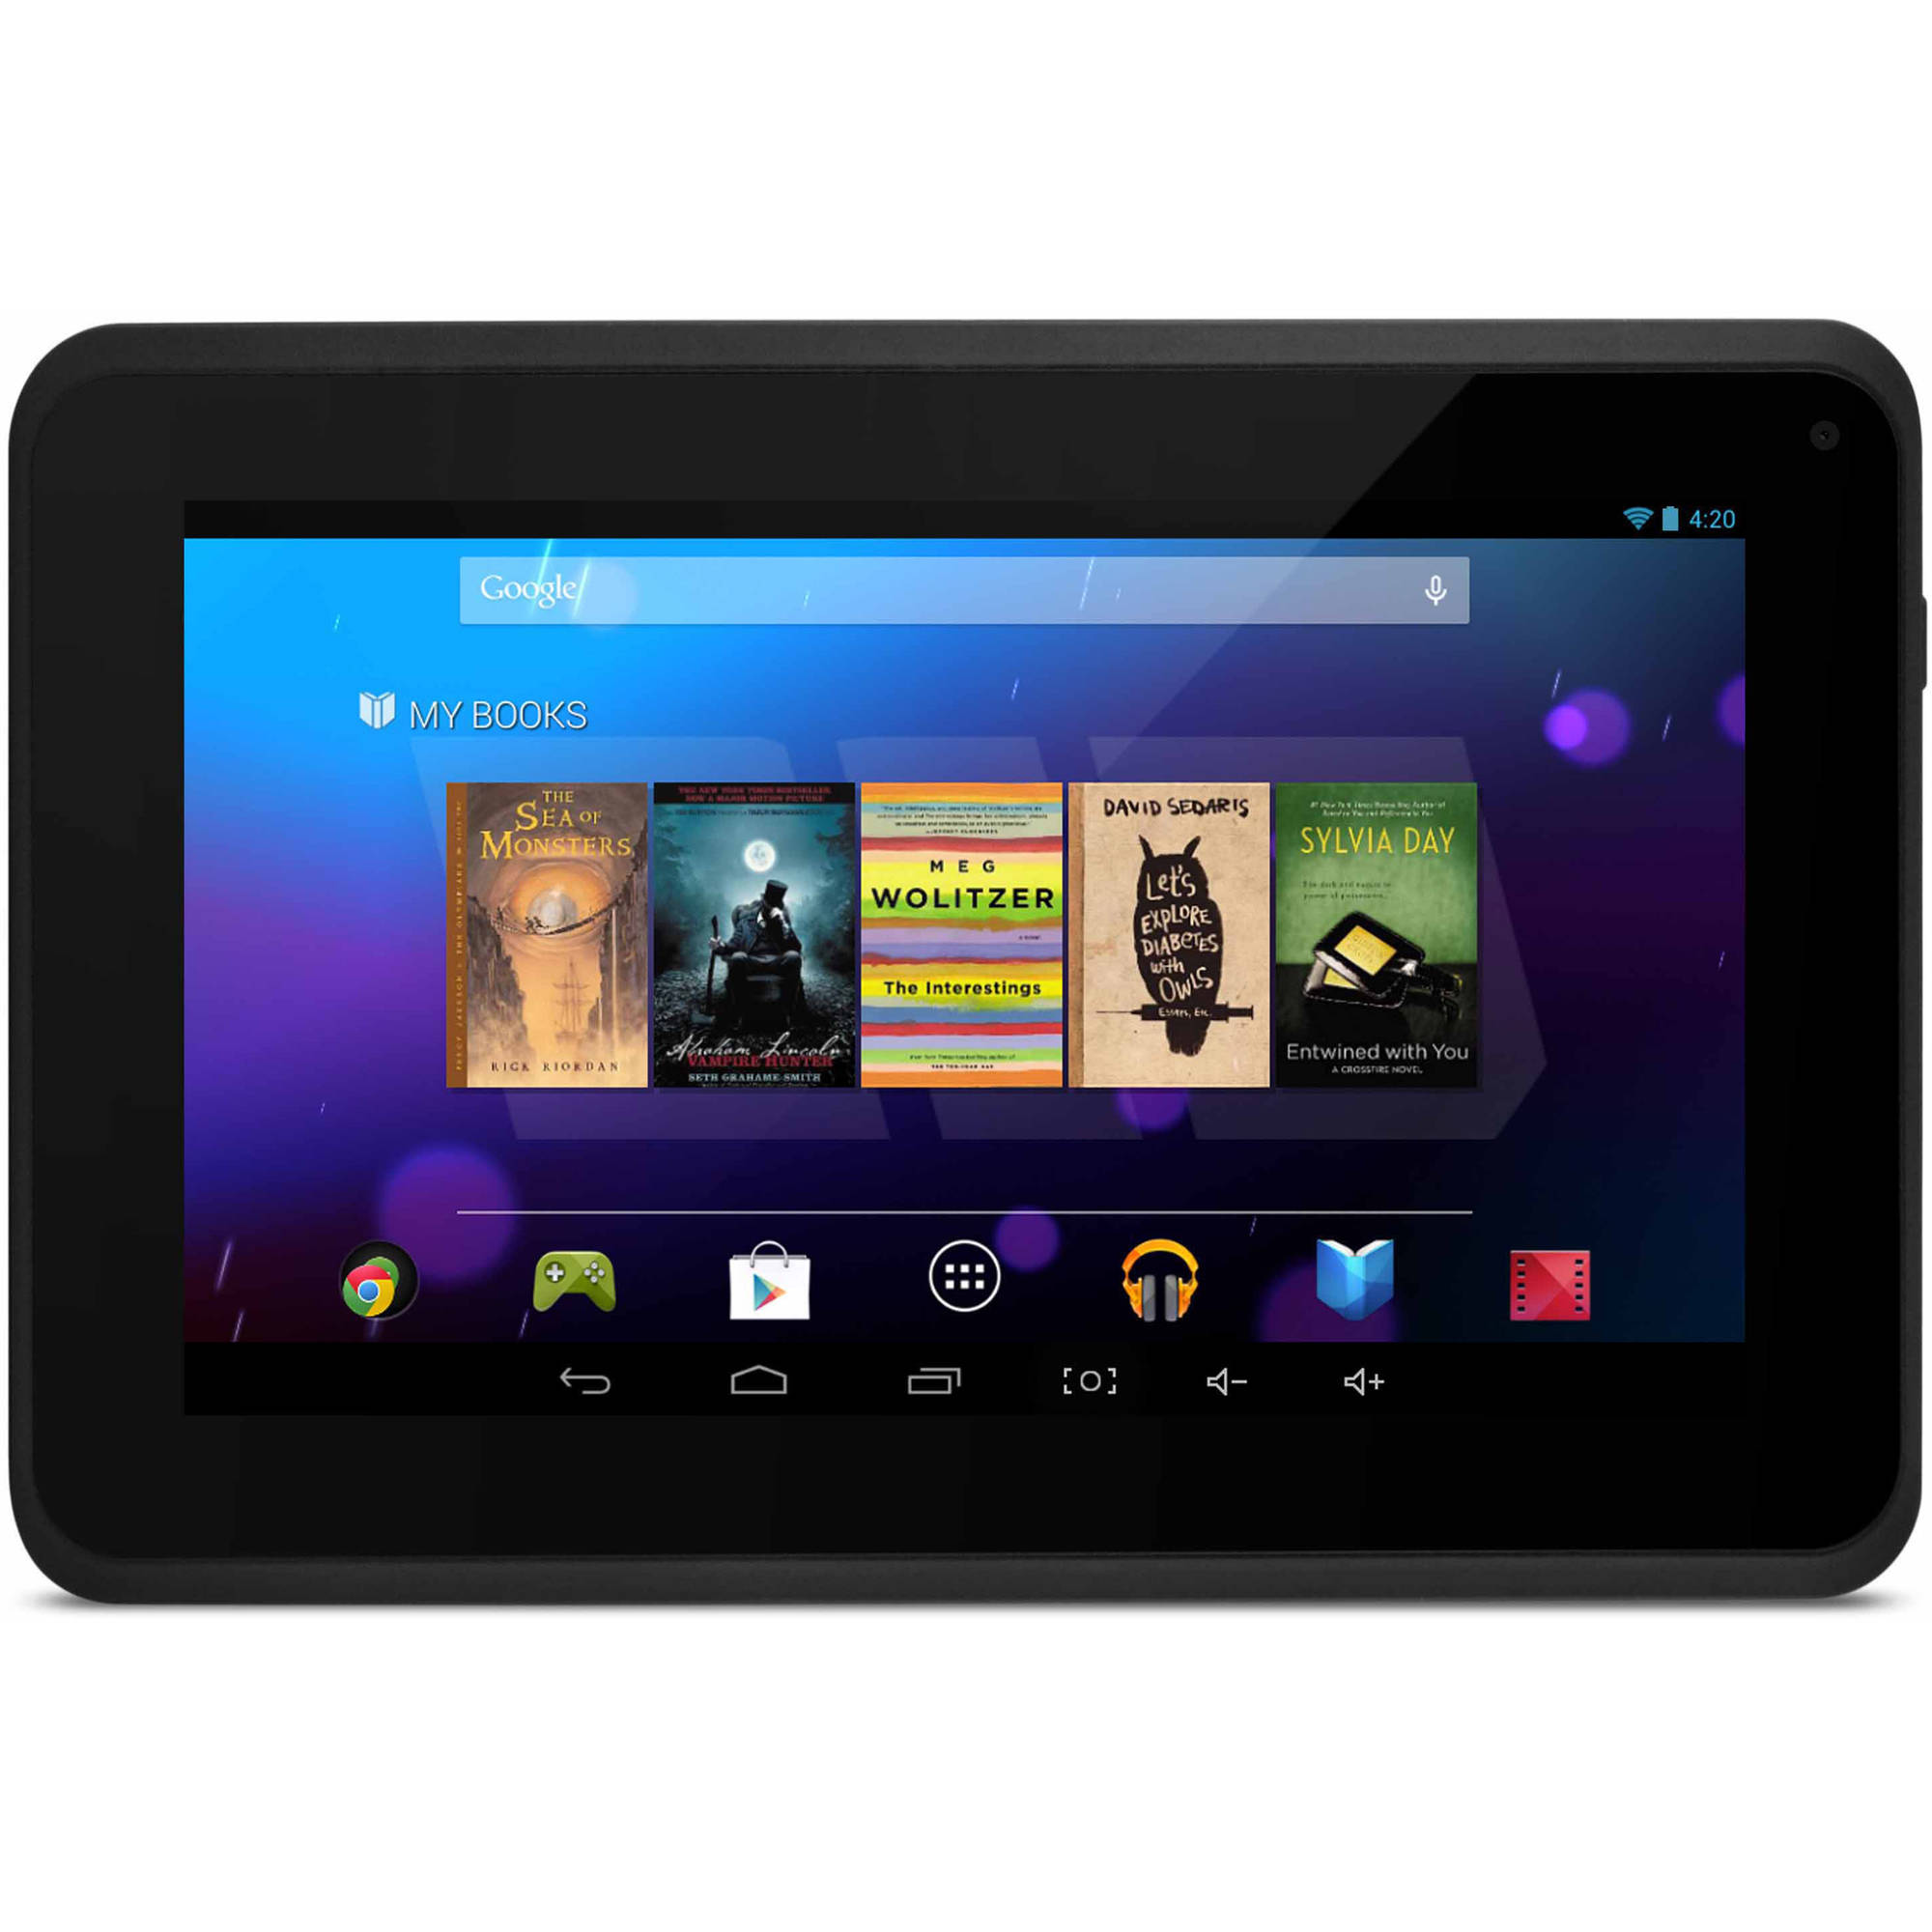 "Refurbished Ematic with WiFi 7"" Touchscreen Tablet PC Featuring Android 4.2 (Jelly Bean) Operating System"